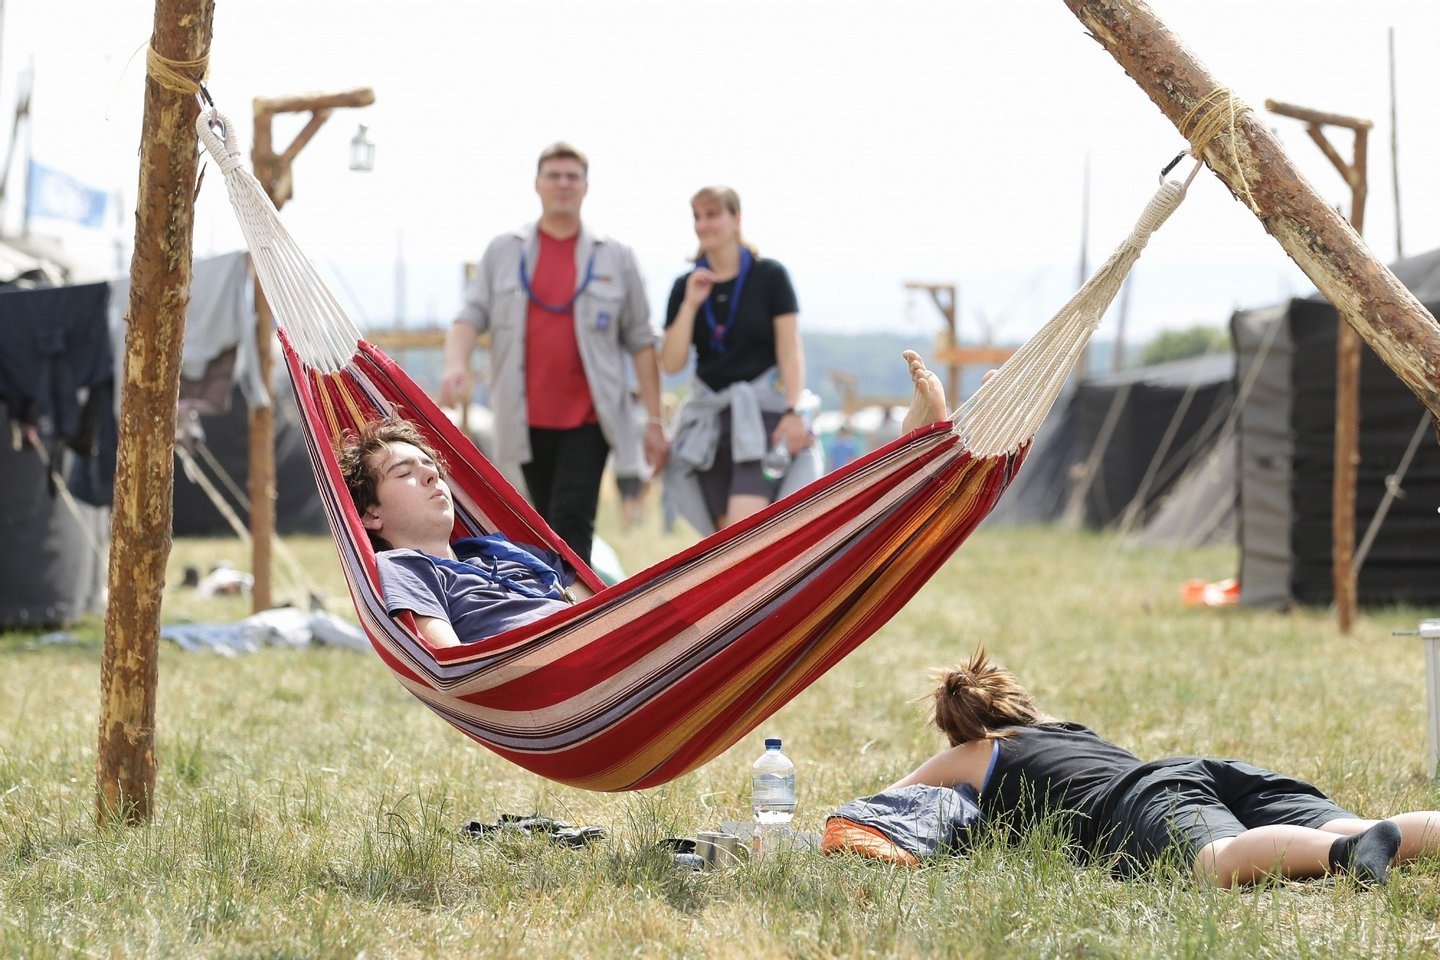 ALMKE, GERMANY - JULY 31:  A scout enjoys the sun in his hammock at the camp on July 31, 2010 in Almke near Wolfsburg, Germany. About 5000 young scouts from Germany, Russia, Belgium, Suisse, USA and Italy aged 12 to 20 participate in a camp. Since 1973, the German VCP-Christian Guides and Pathfinders organisation, offers an International historic boys and girls scout meeting during the summer holidays. On a 25 hectare field include 1370 tens, a tent church and a tent theater. The Federal camp is held every four years.  (Photo by Andreas Rentz/Getty Images)